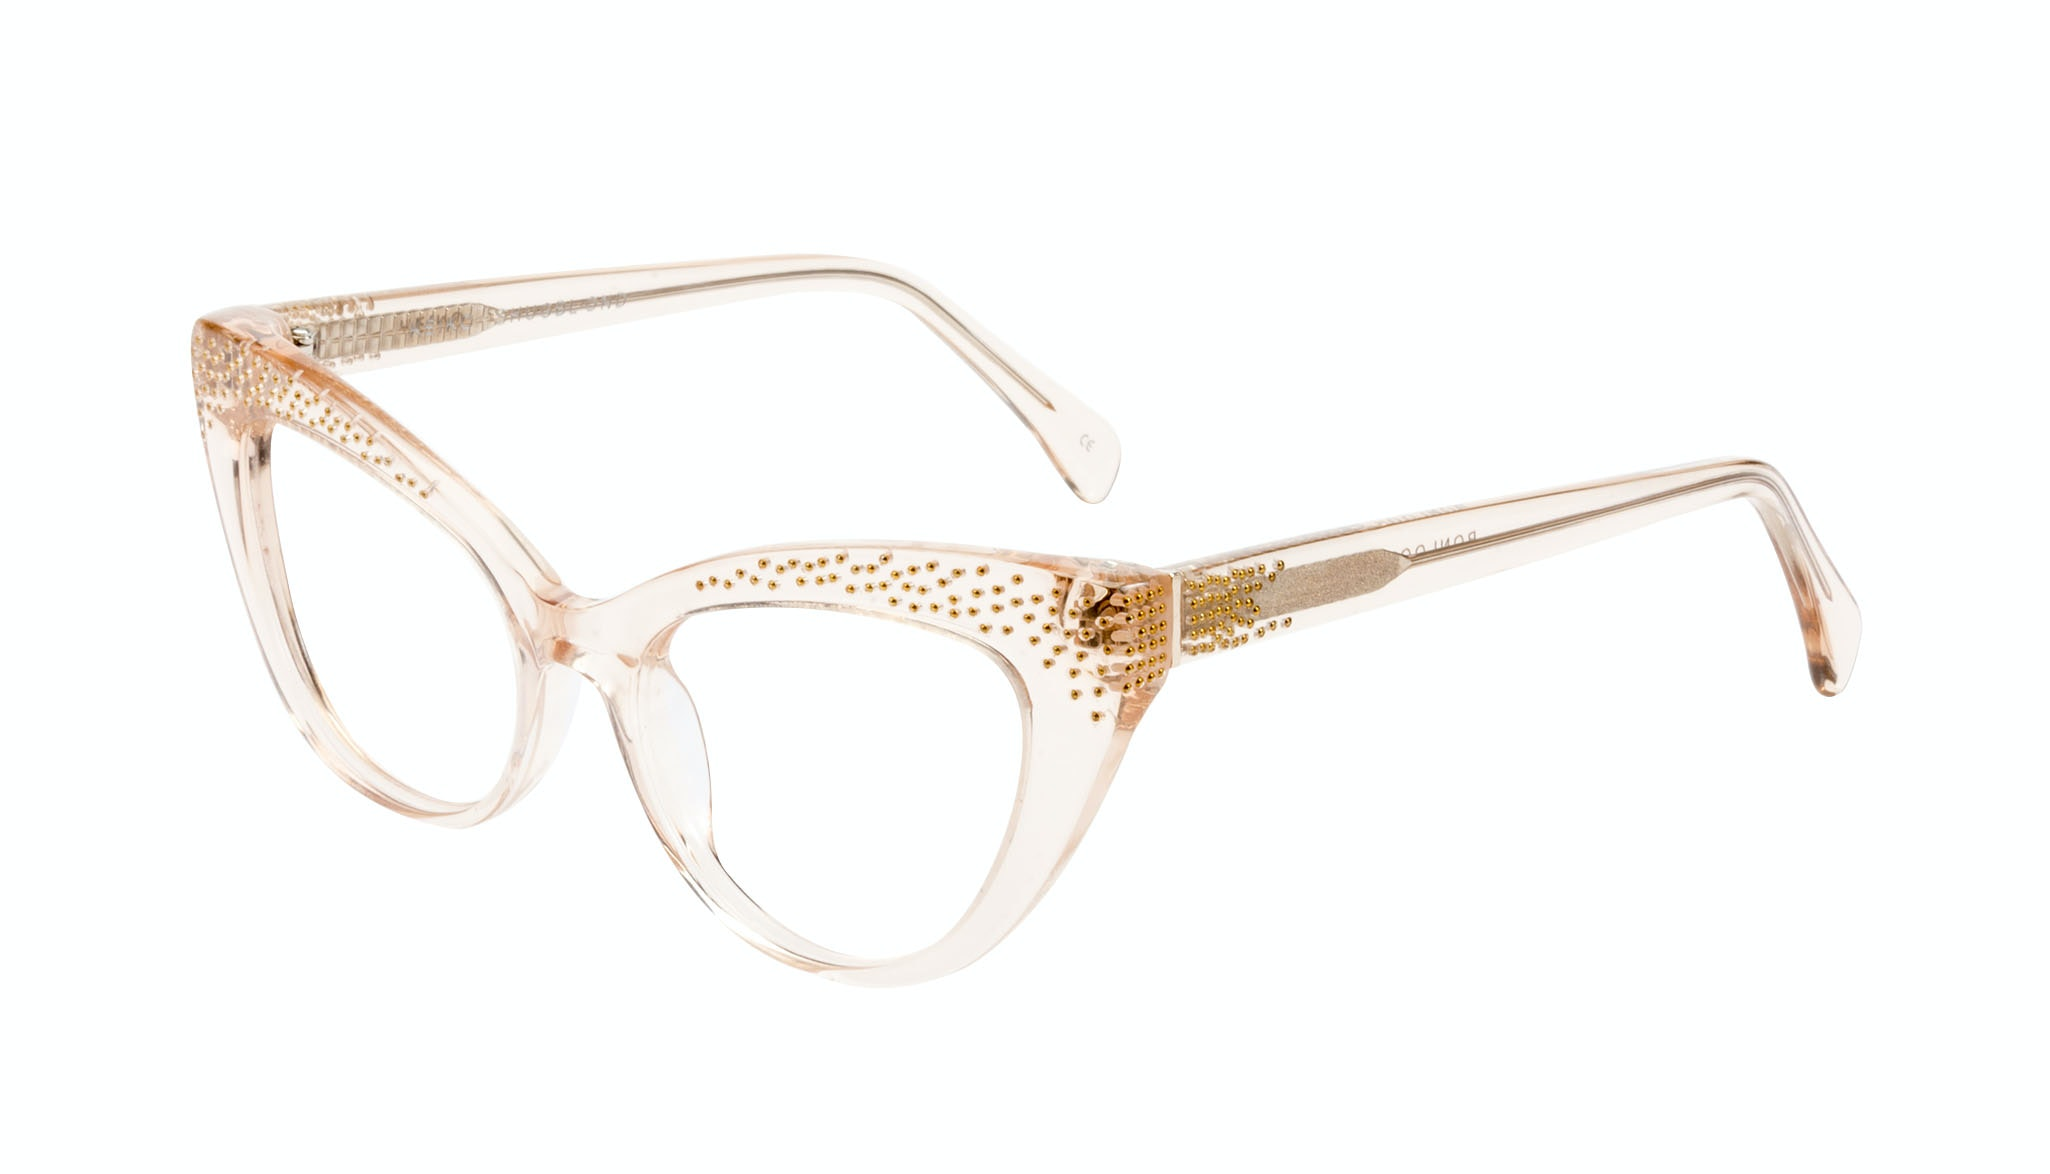 Affordable Fashion Glasses Cat Eye Eyeglasses Women Keiko Shug Blond Tilt